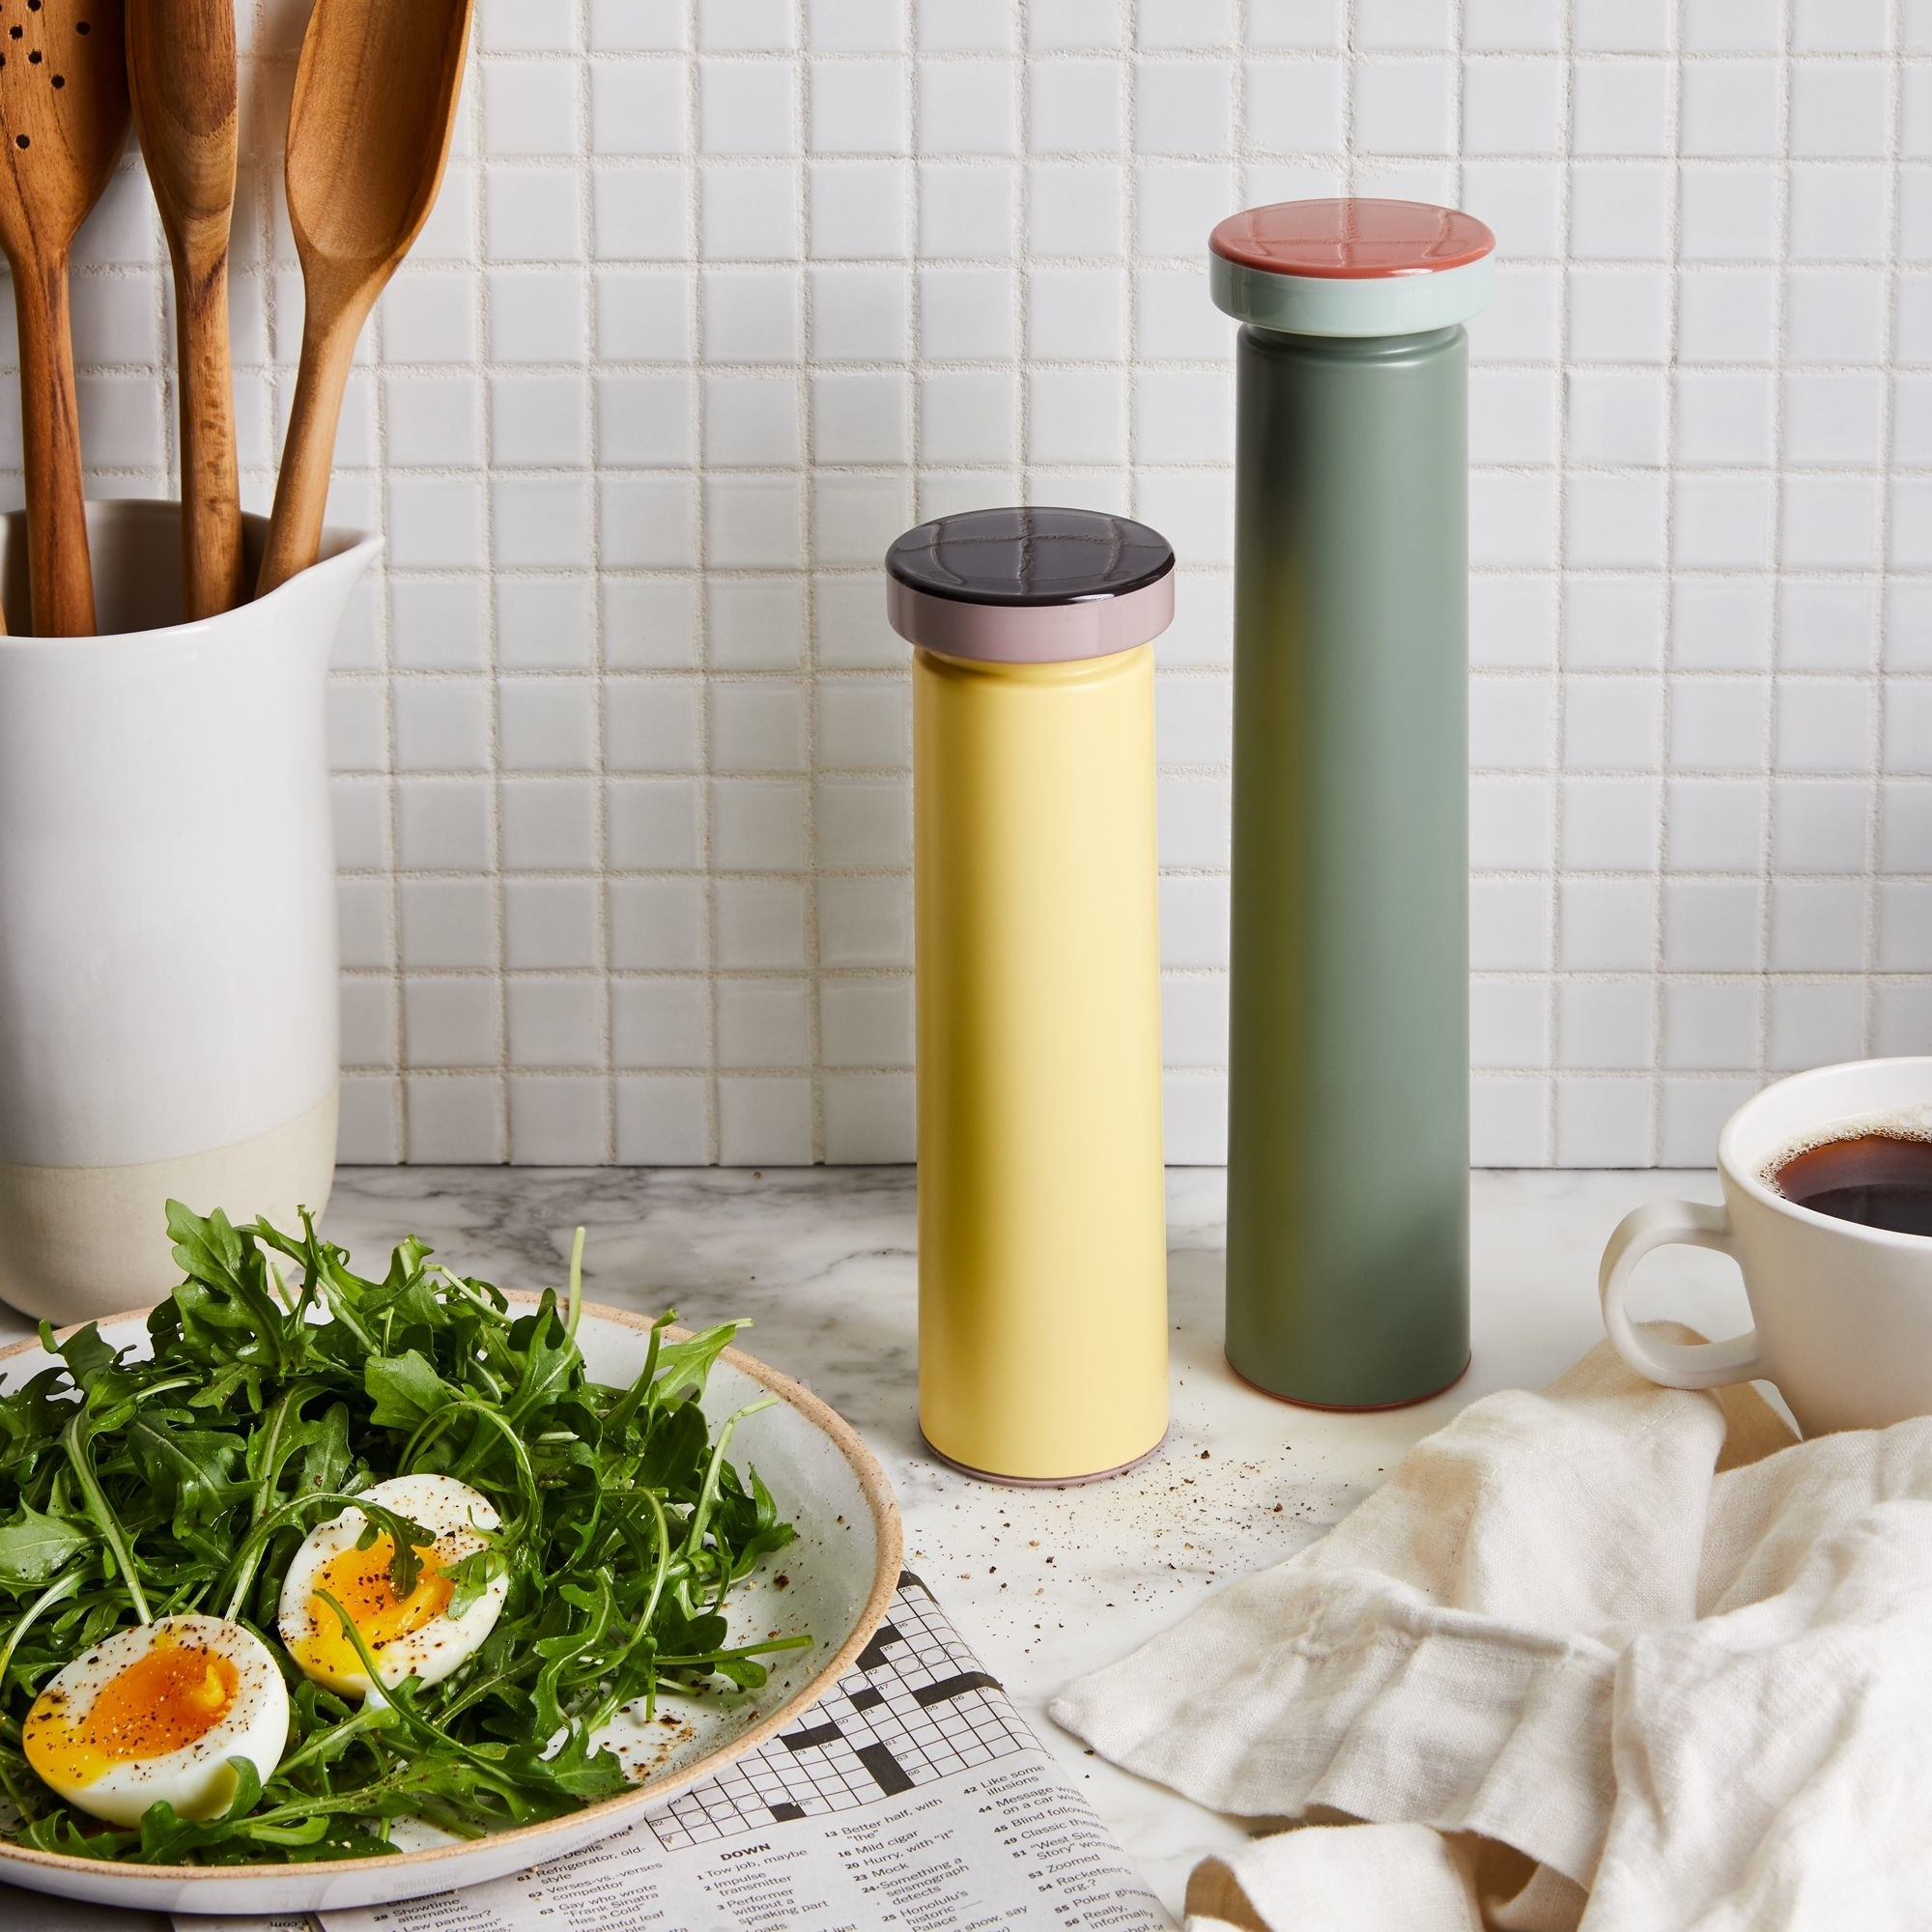 Small yellow and taller green spice grinders sitting on a kitchen counter